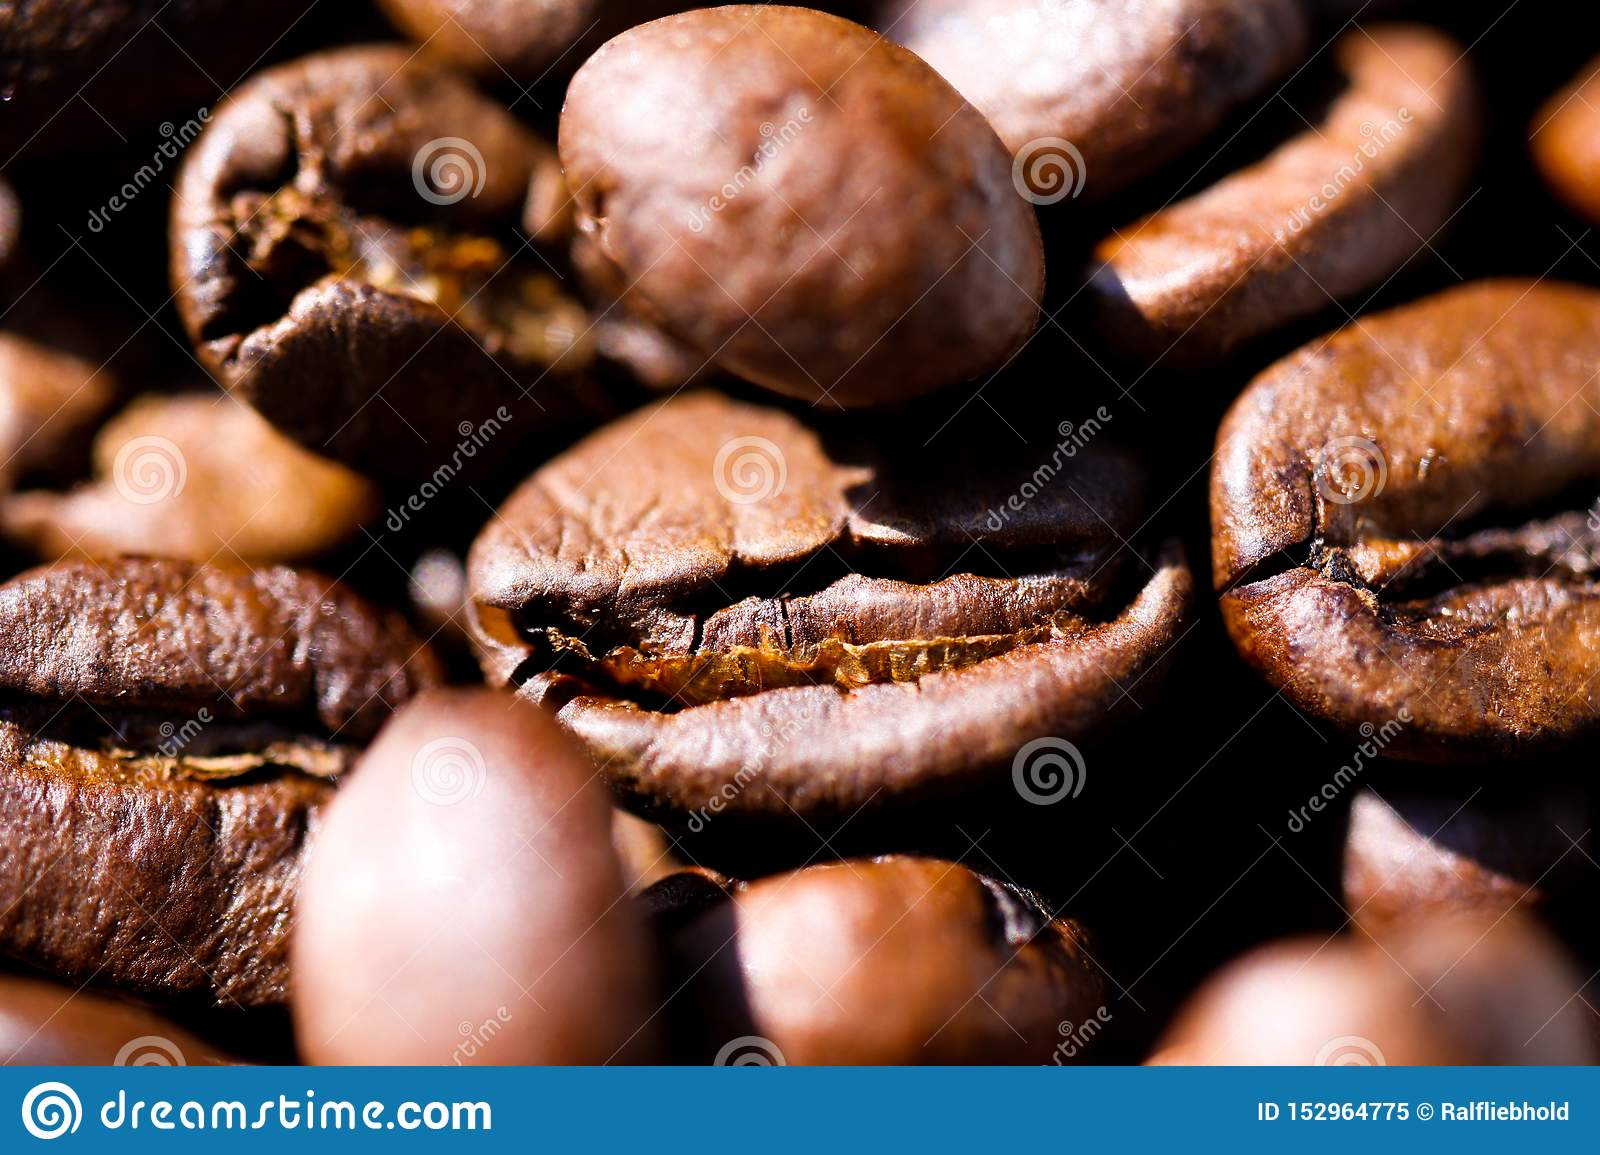 Macro close up of pile of roasted brown coffee beans in natural sunlight showing details of surface